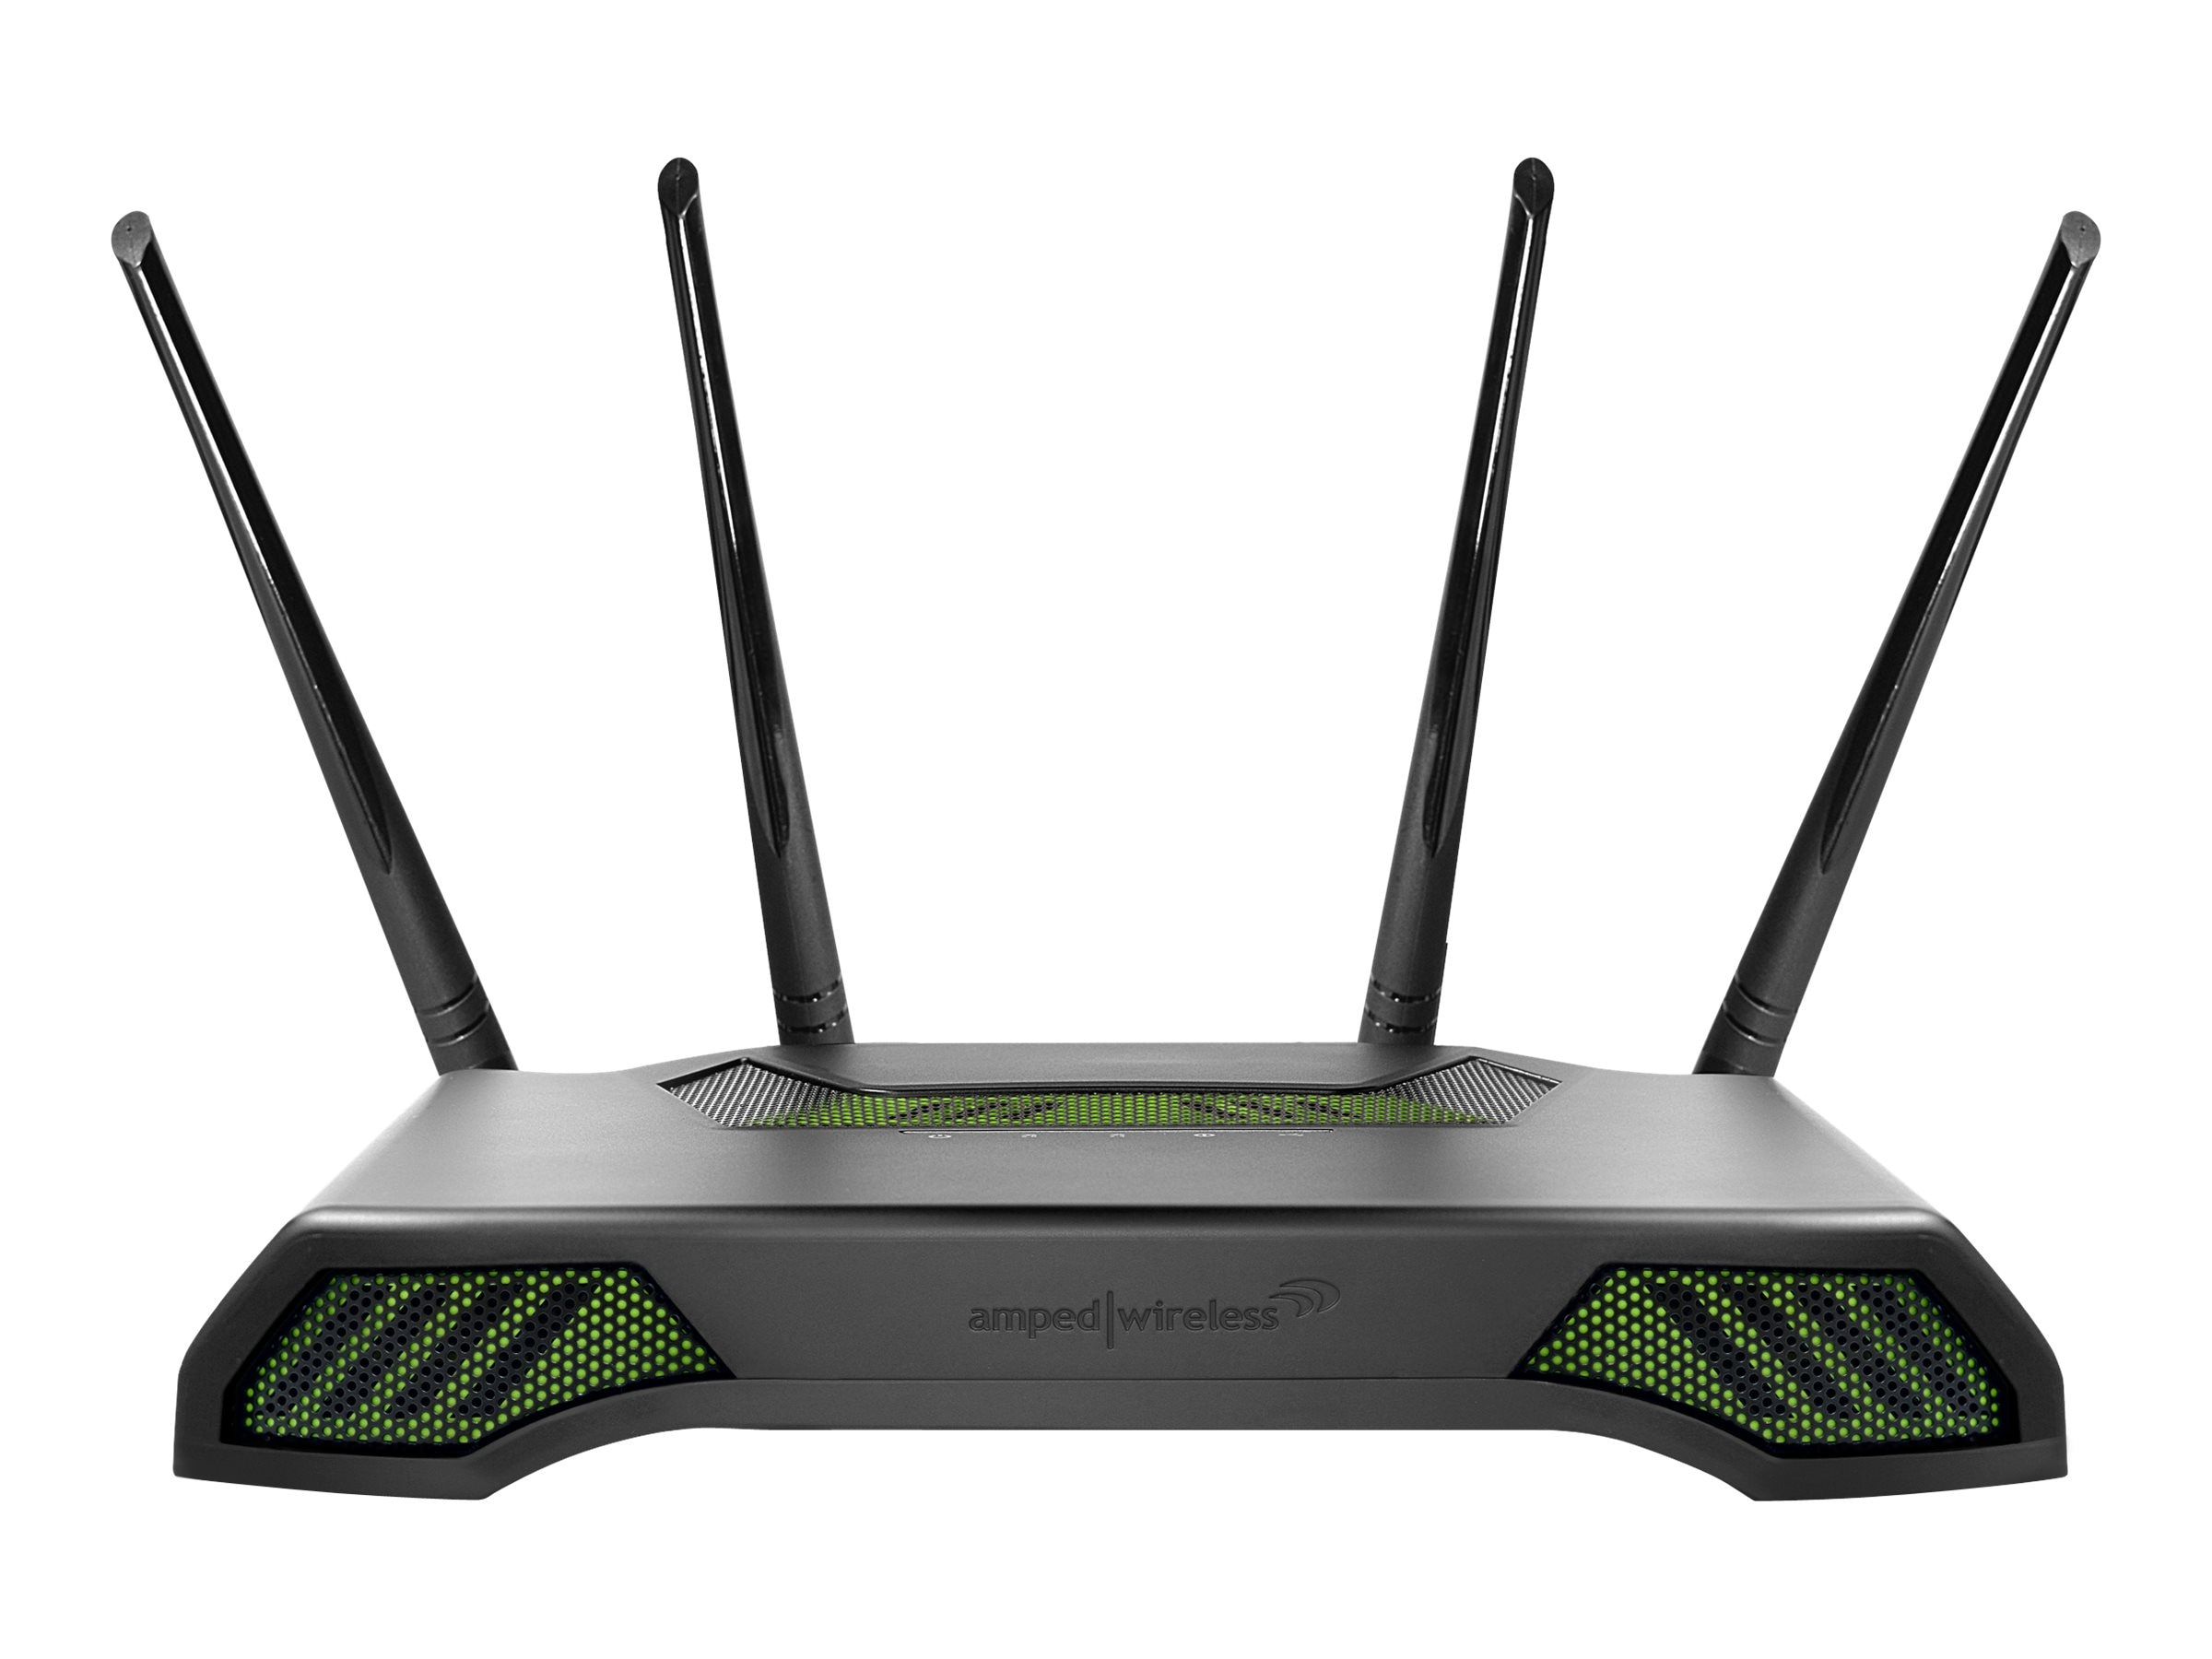 Amped Wireless High Power AC1900 Wi-Fi Router